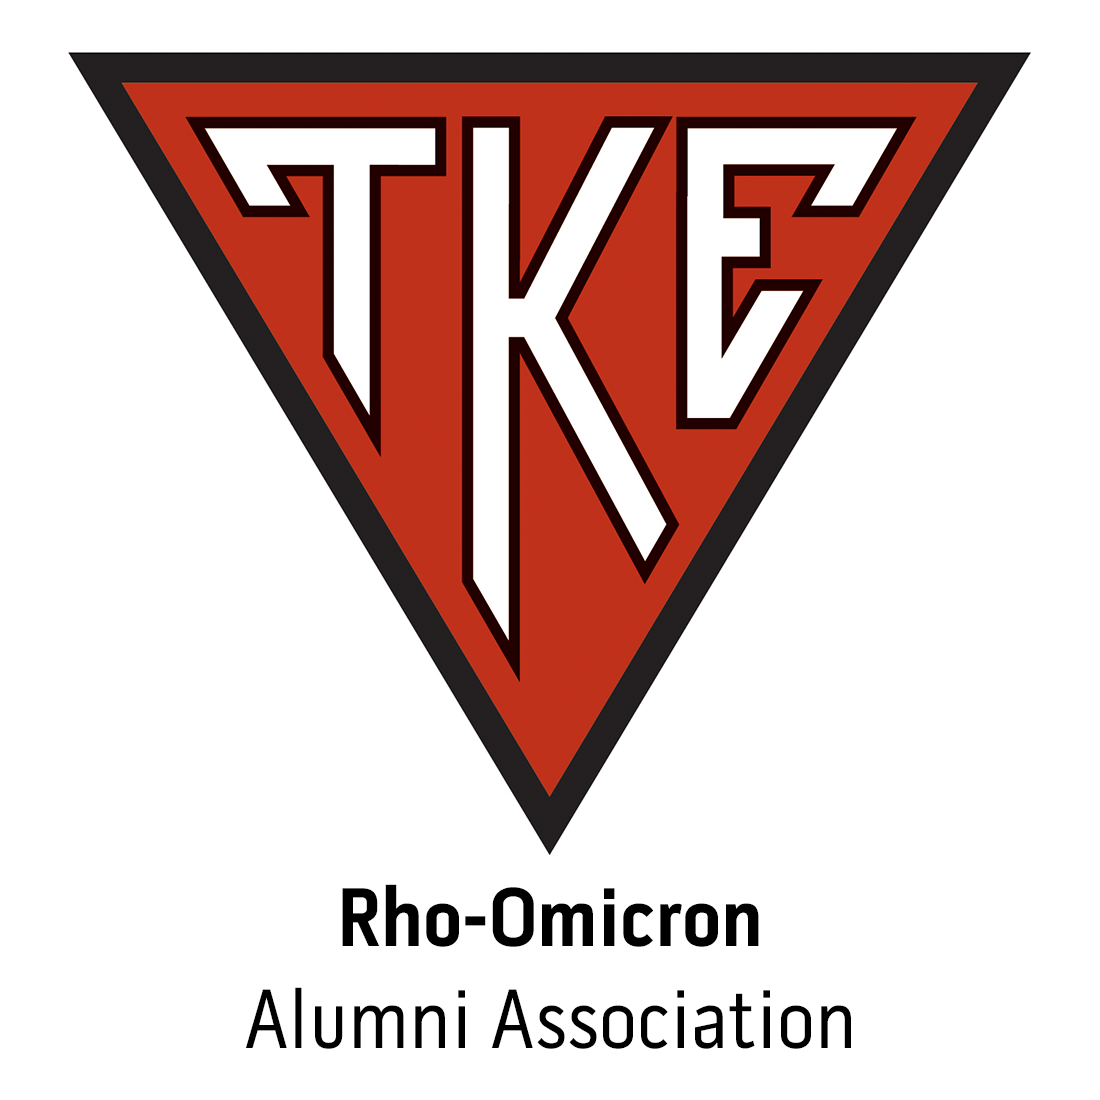 Rho-Omicron Alumni Association at Cal Poly, San Luis Obispo